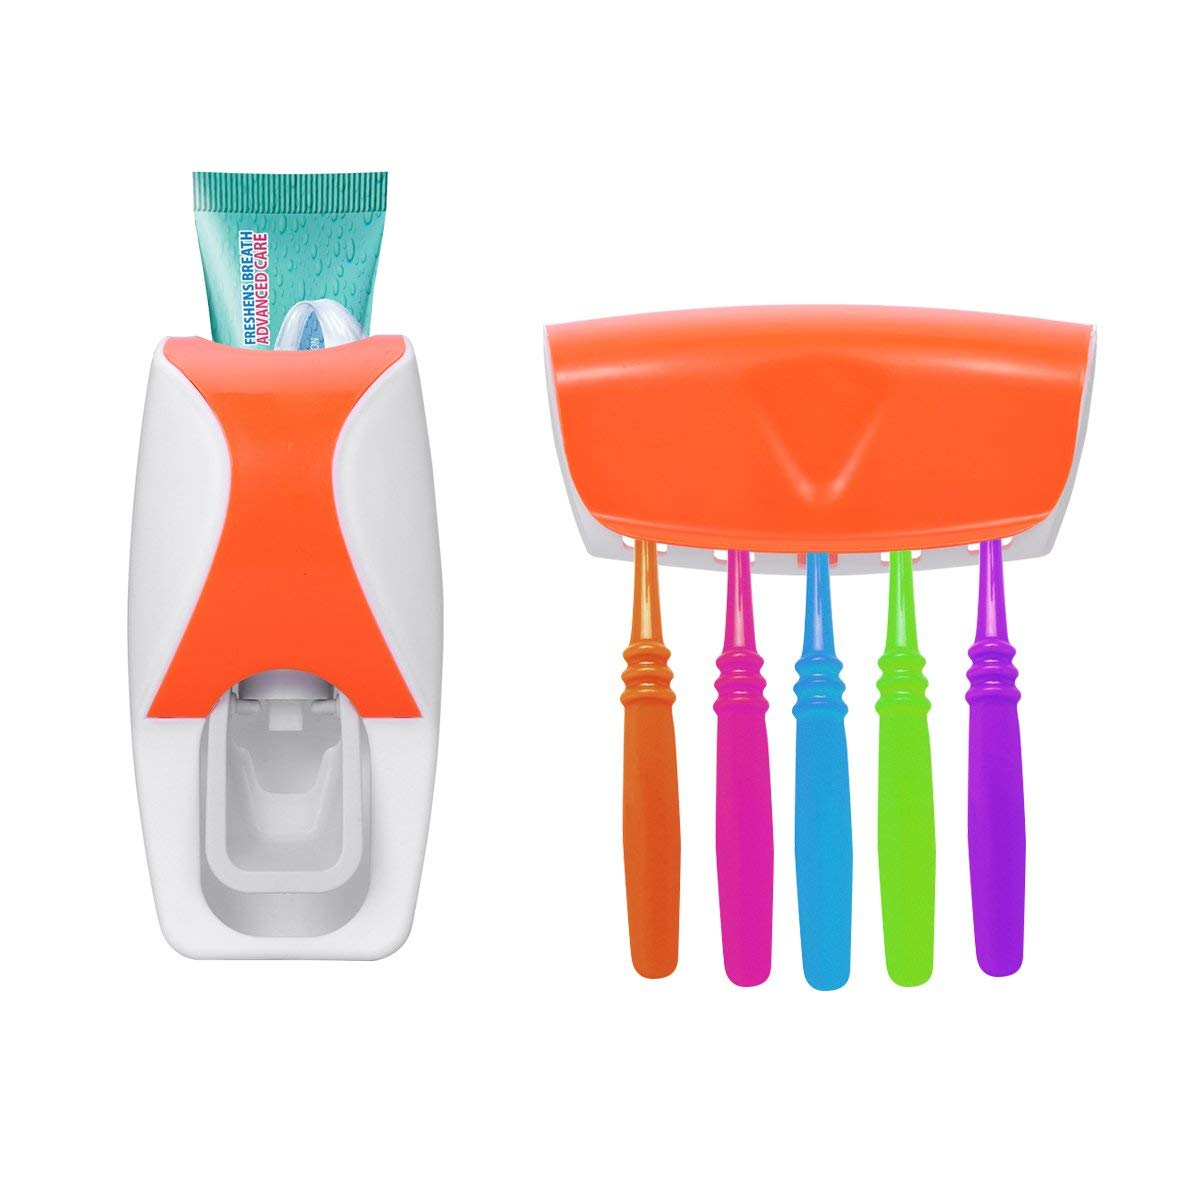 OUNONA Toothbrush Holder Automatic Toothpaste Dispenser Set Toothpaste Squeezer With Brush Holder Set for Bathroom Use(Orange)